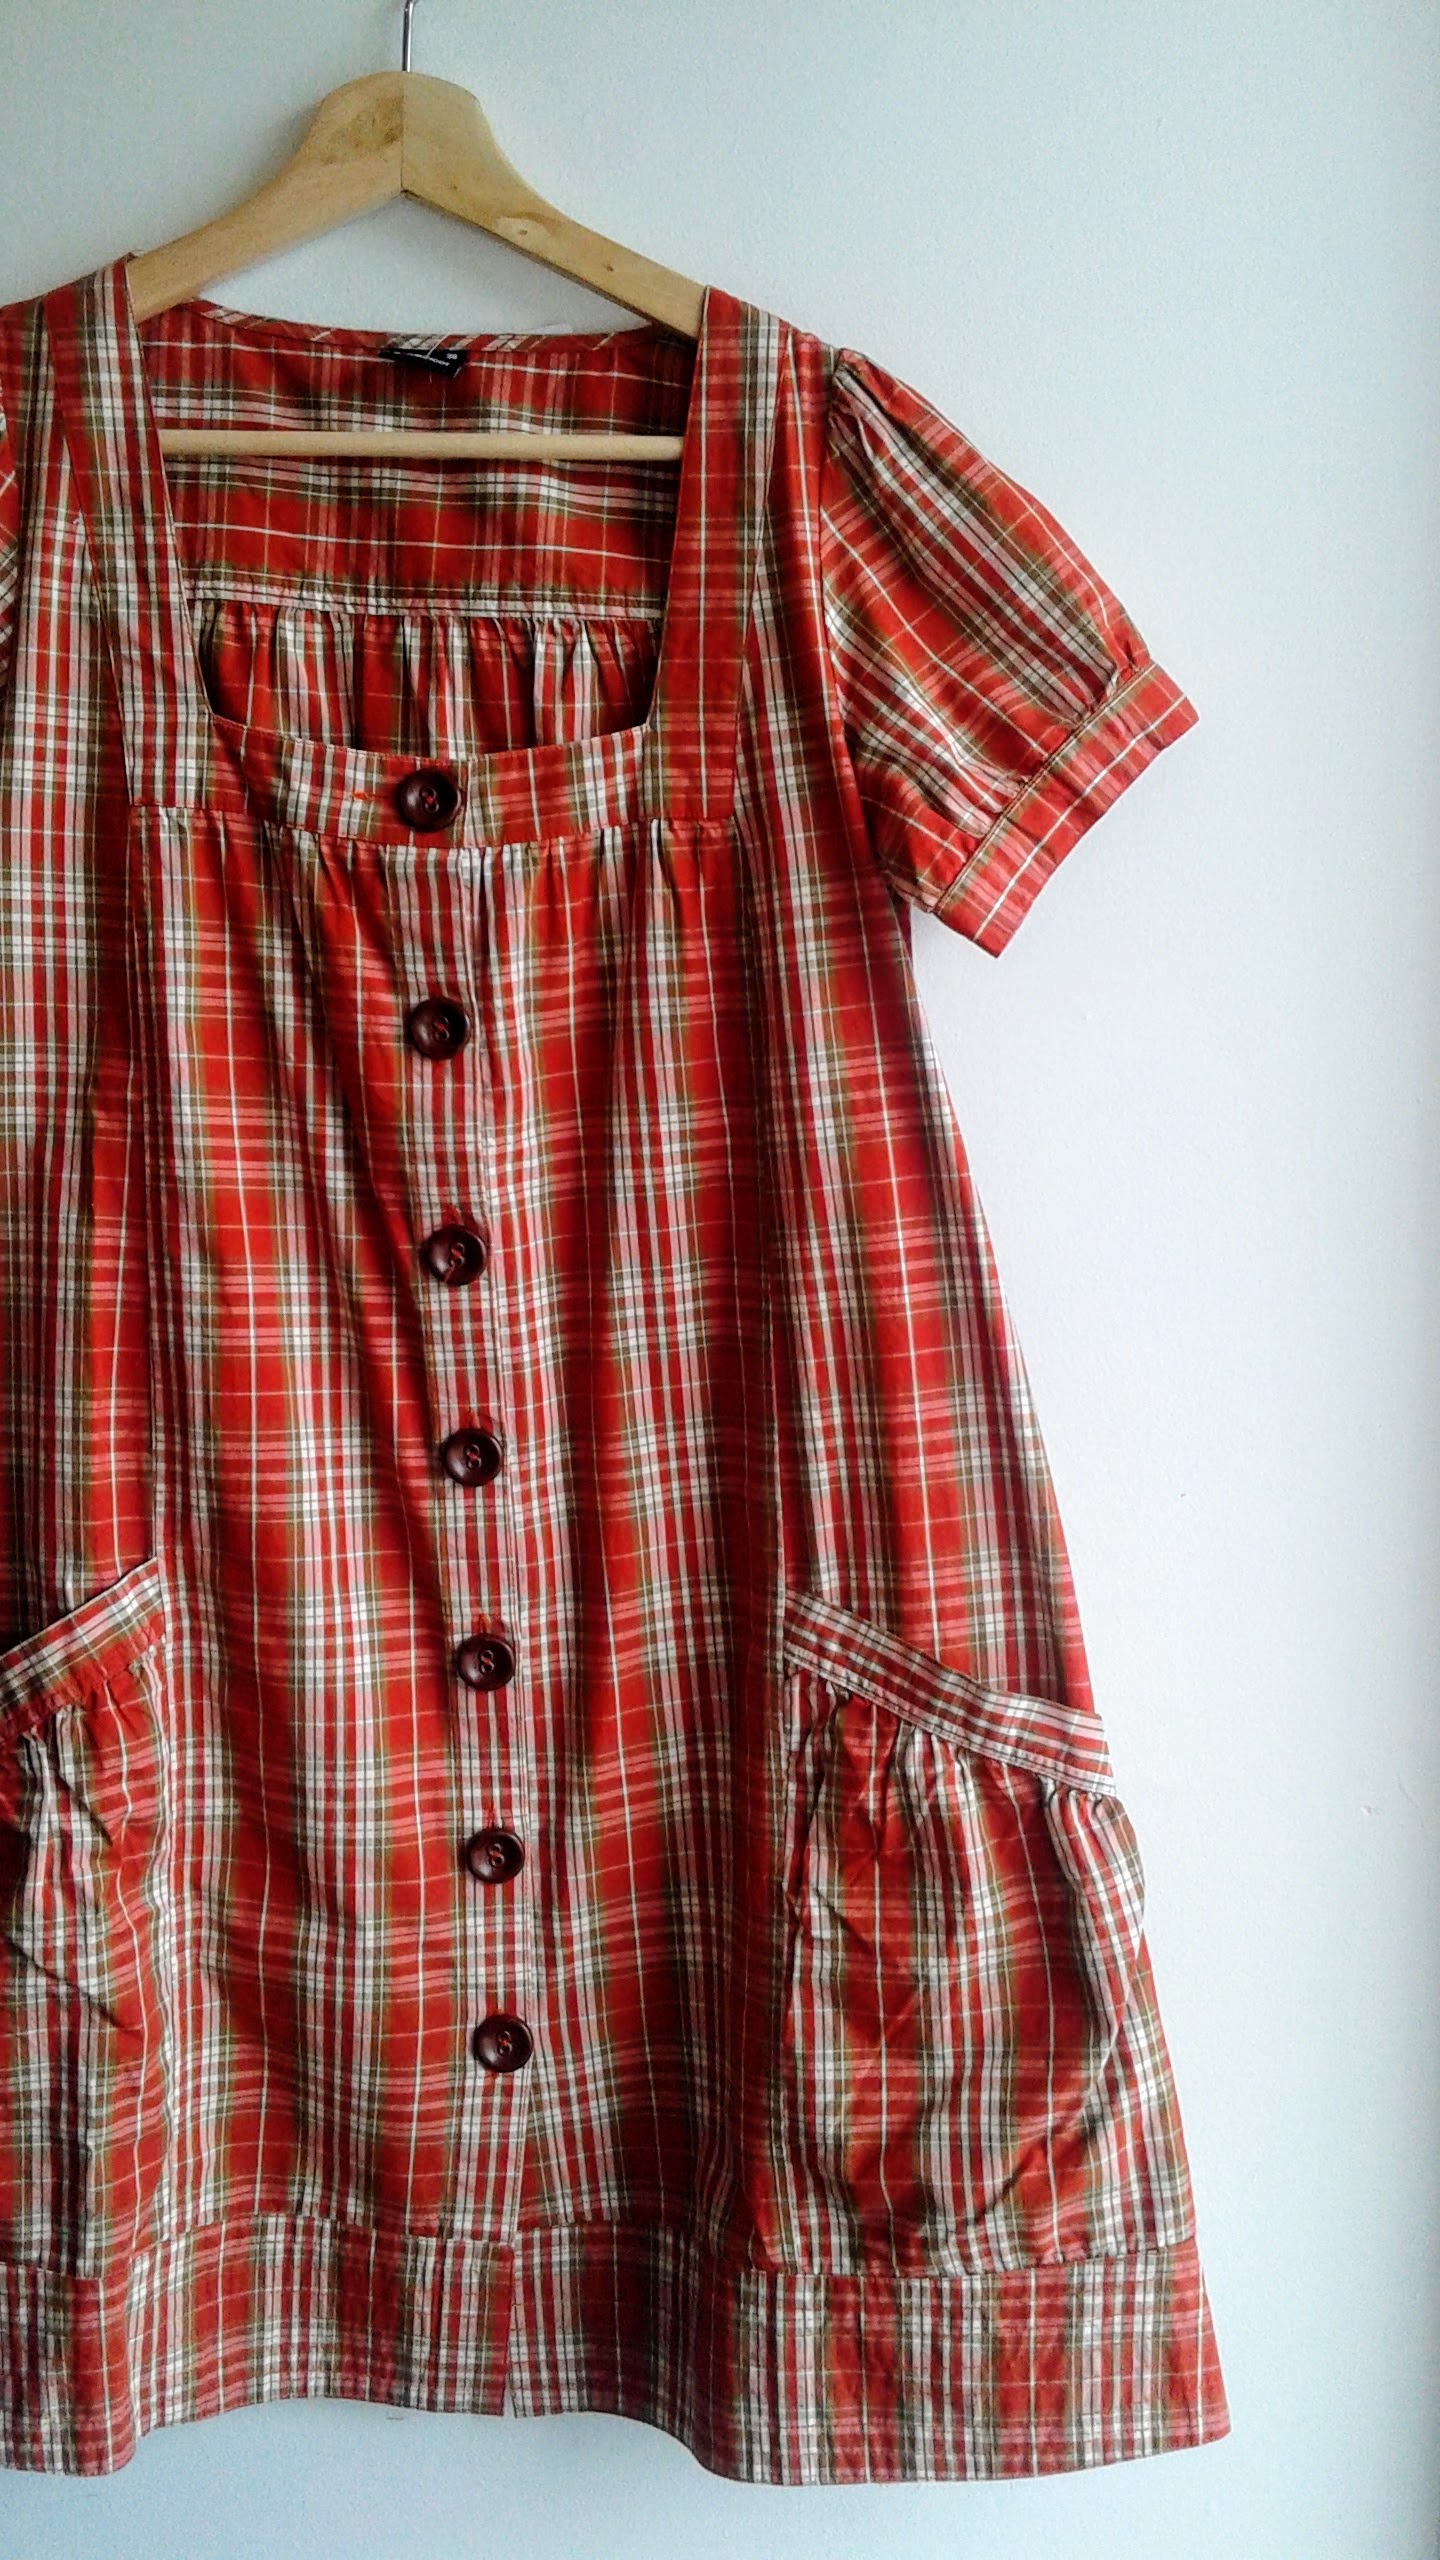 Gina Tricot dress; Size M, $30